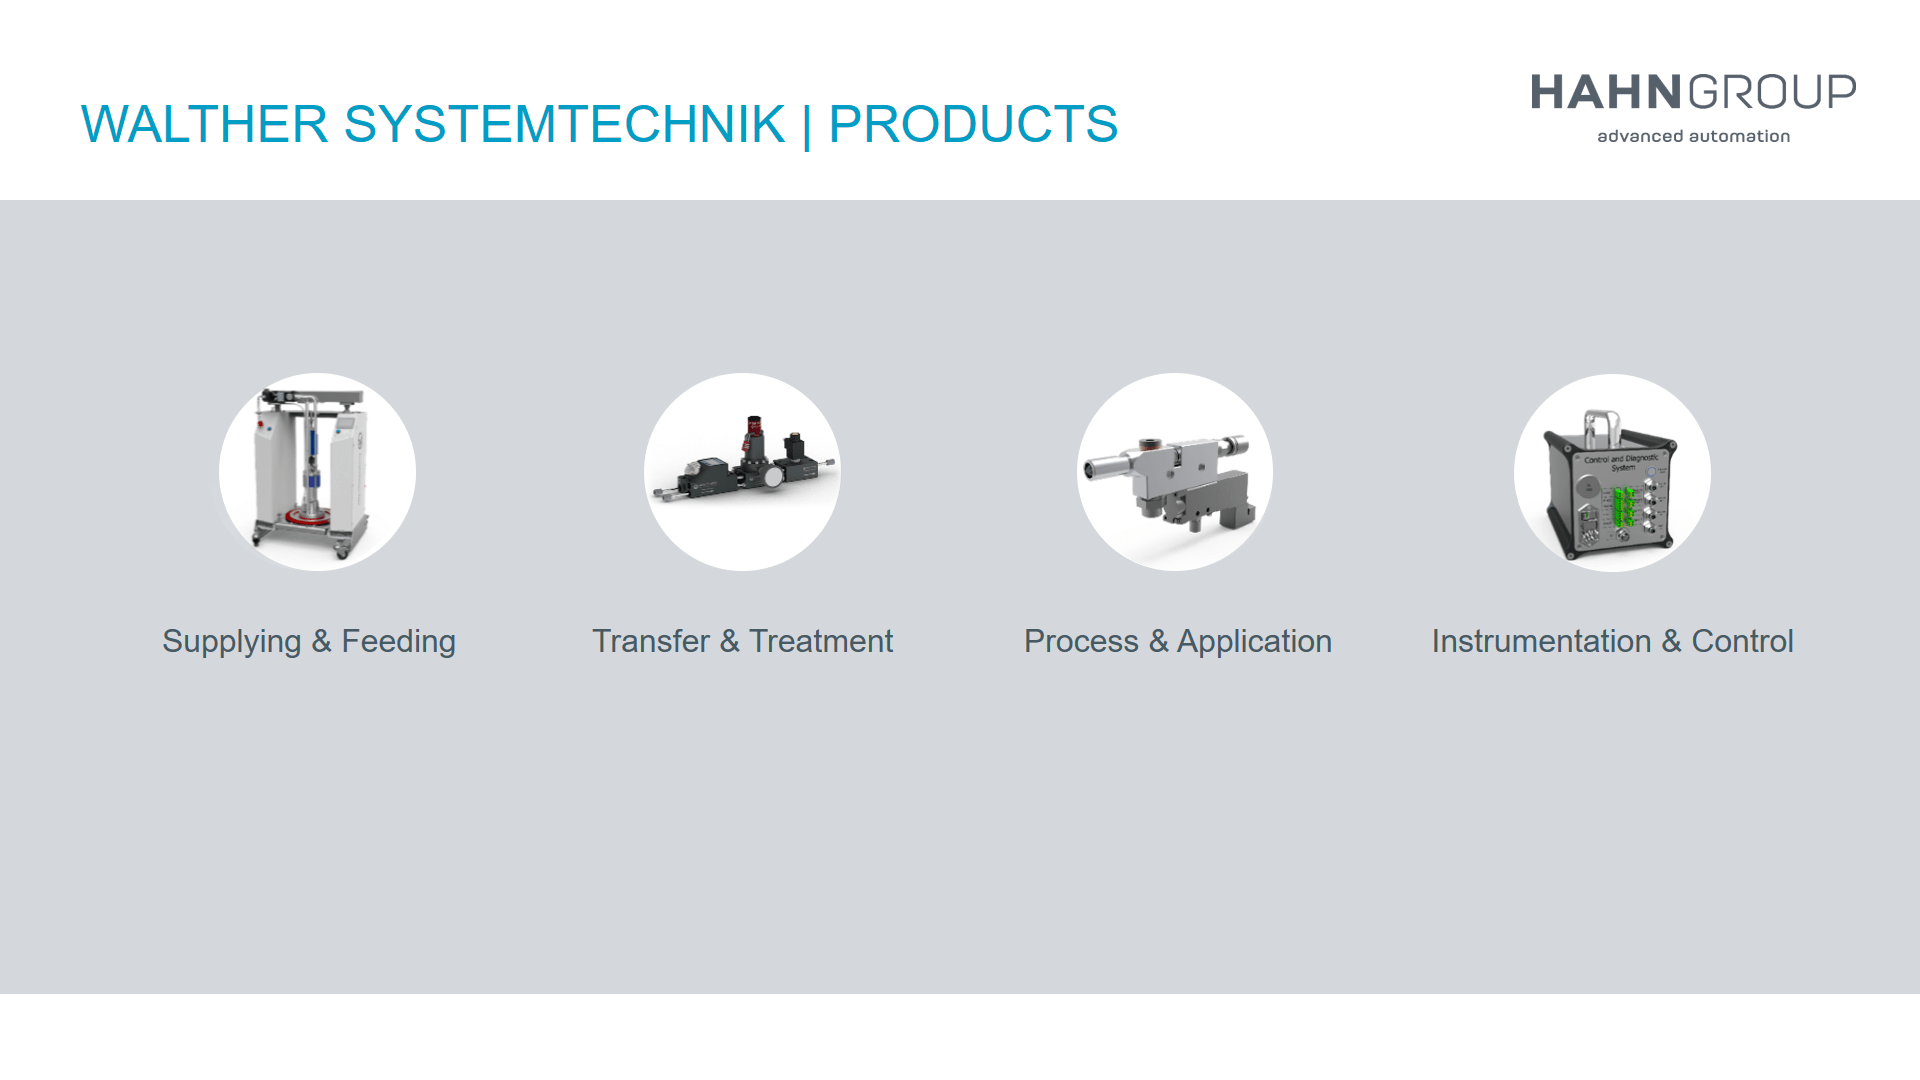 Standard Products of HAHN Group Walther Systemtechnik